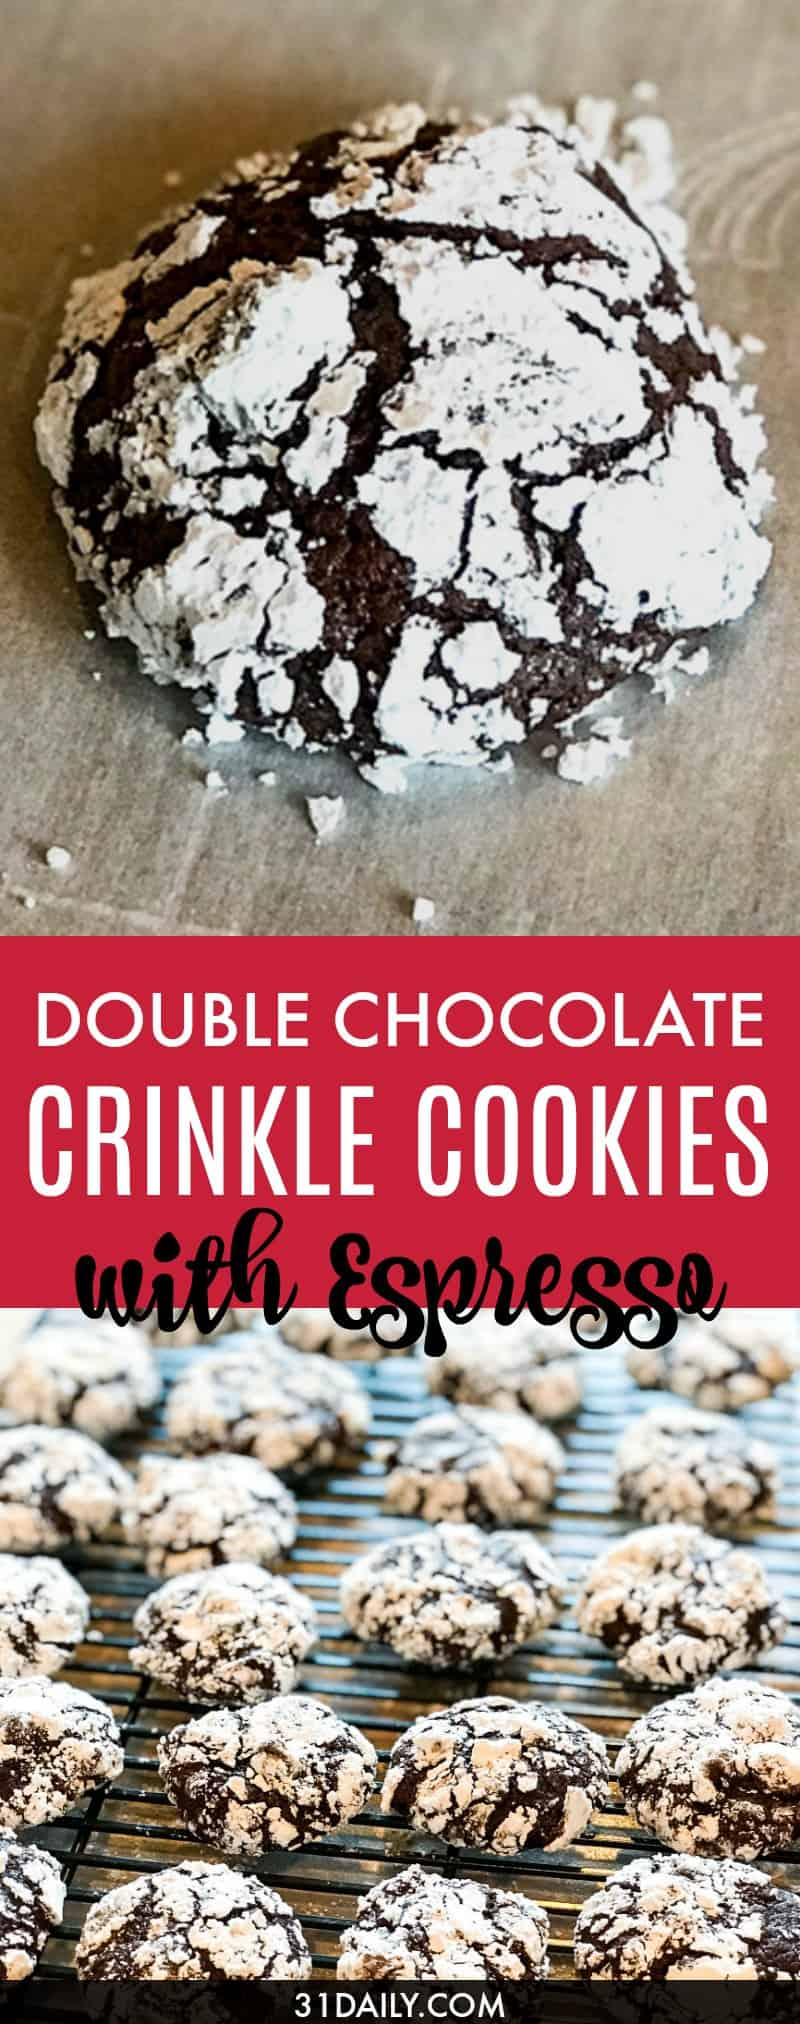 Double Chocolate Crinkle Cookies with Espresso | 31Daily.com